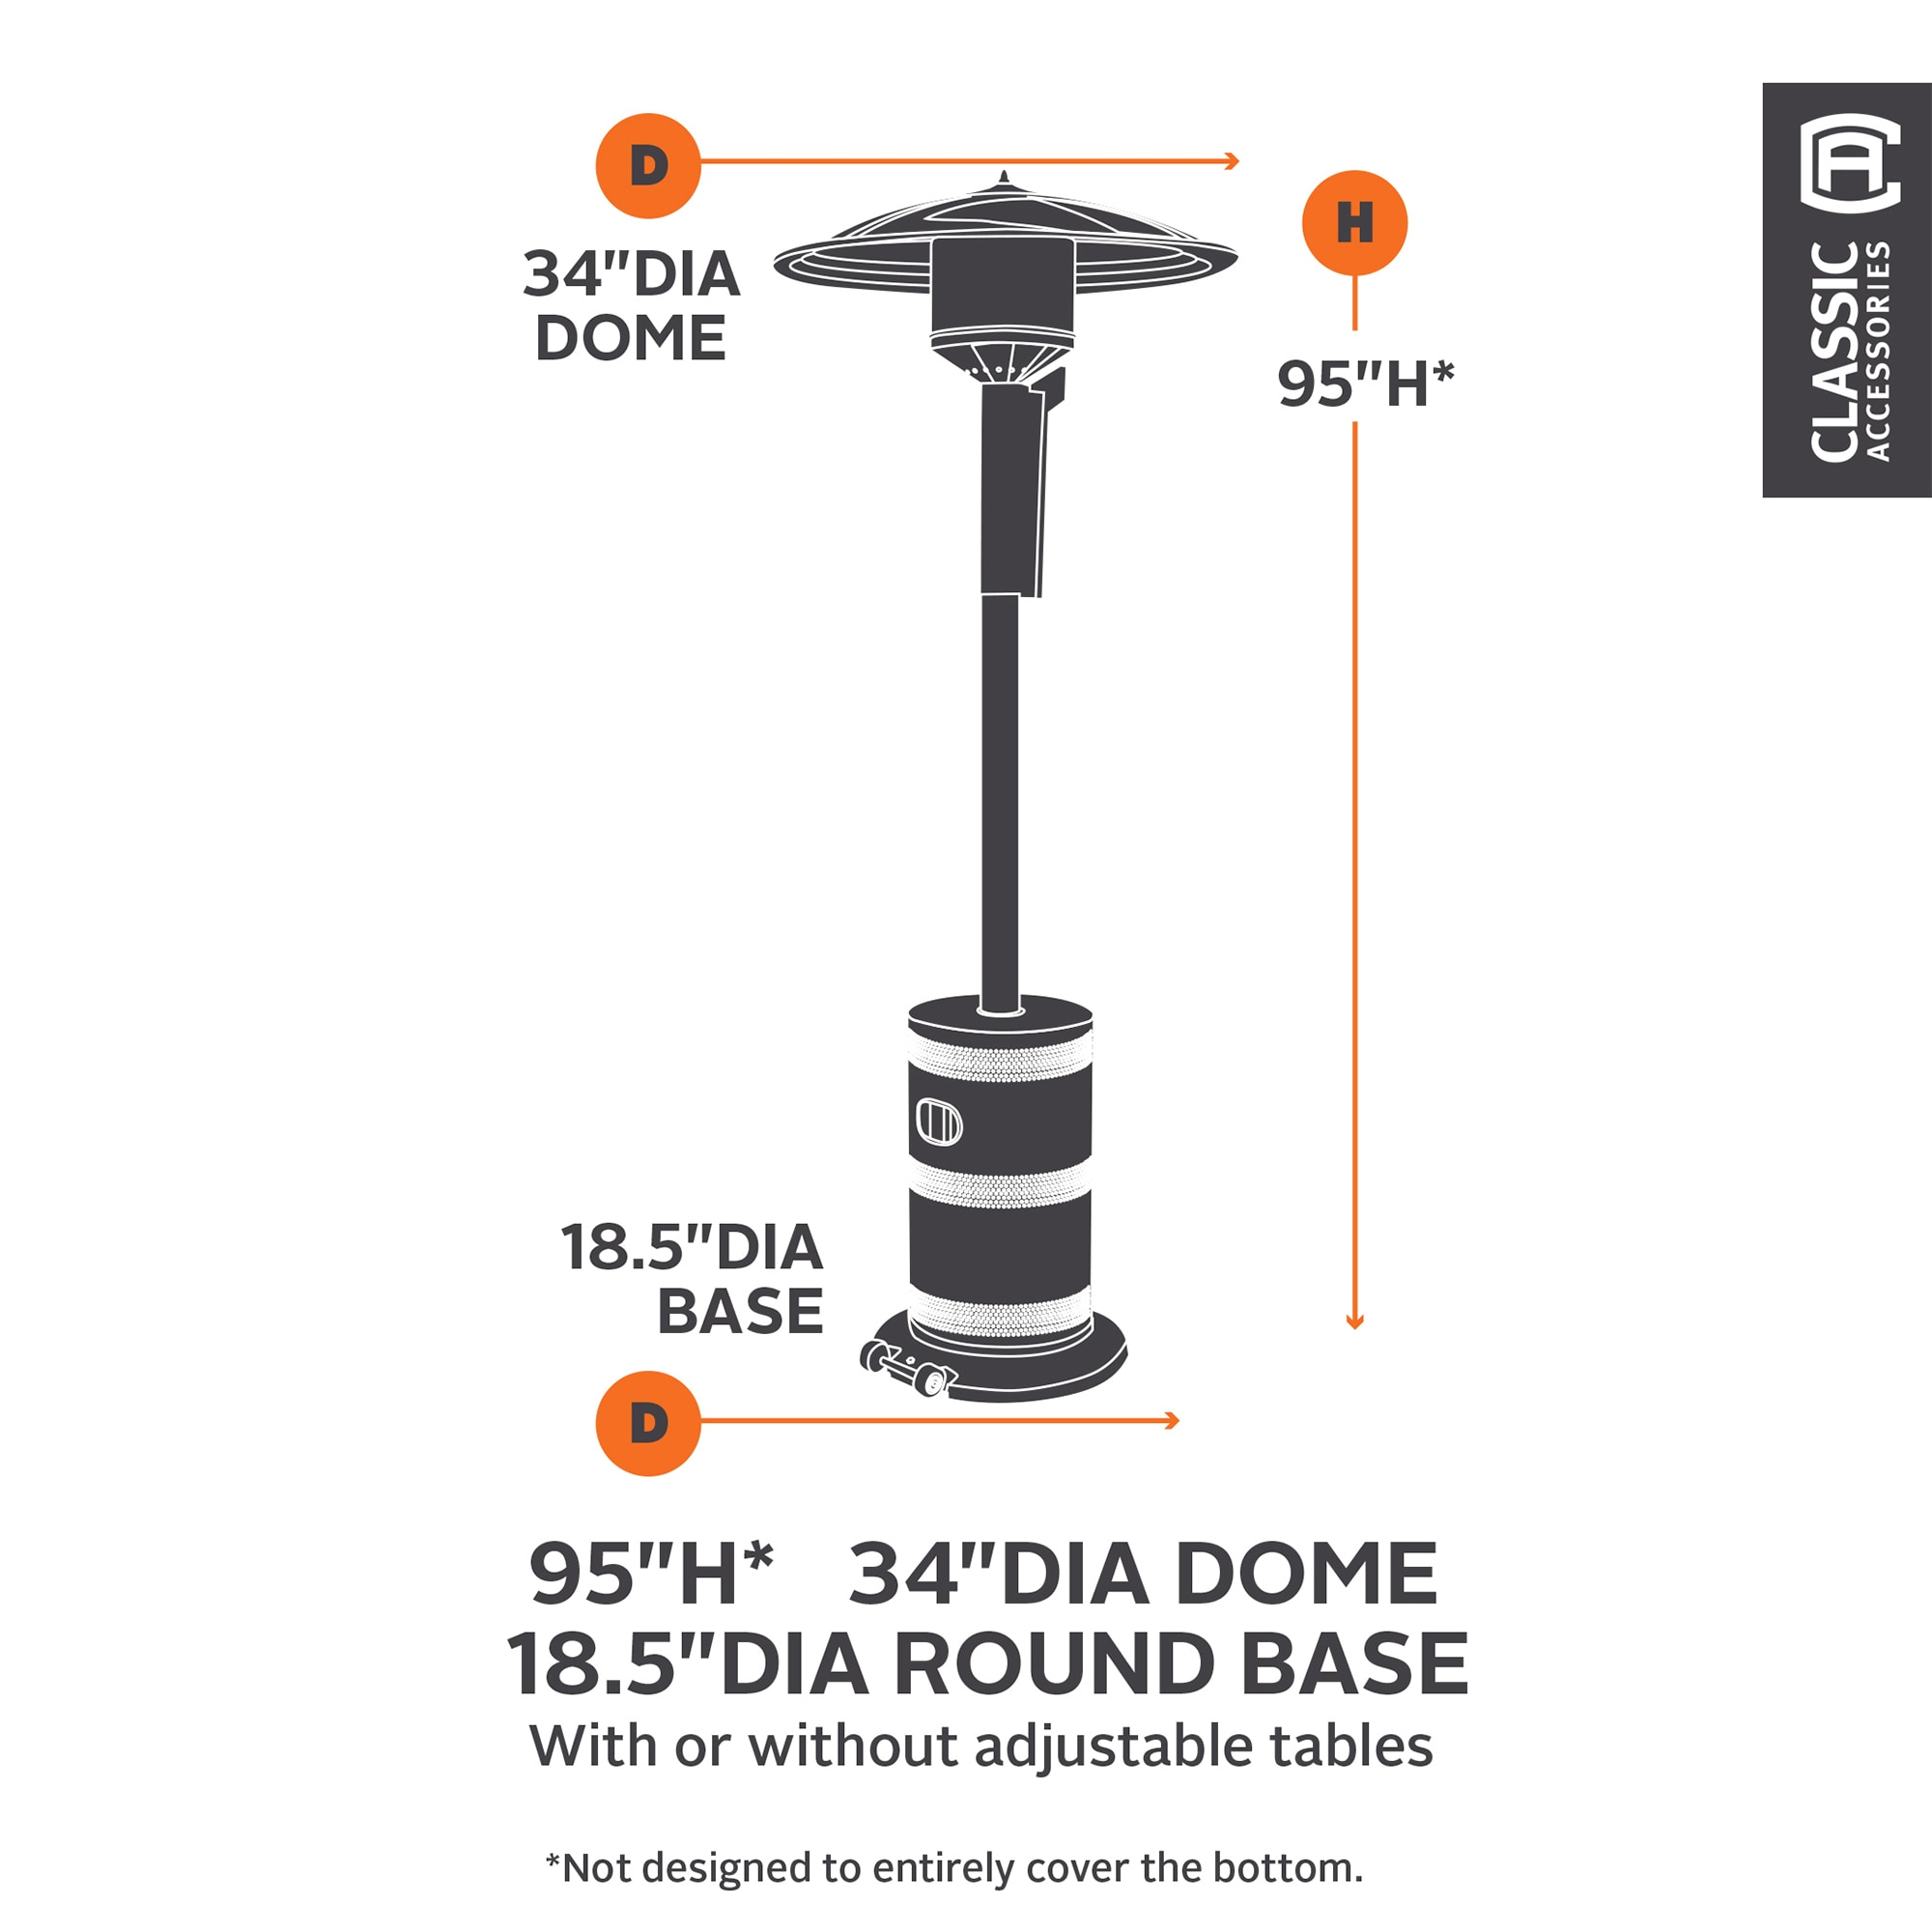 Classic Accessories Covers Hickory Patio Heater Covers Standup